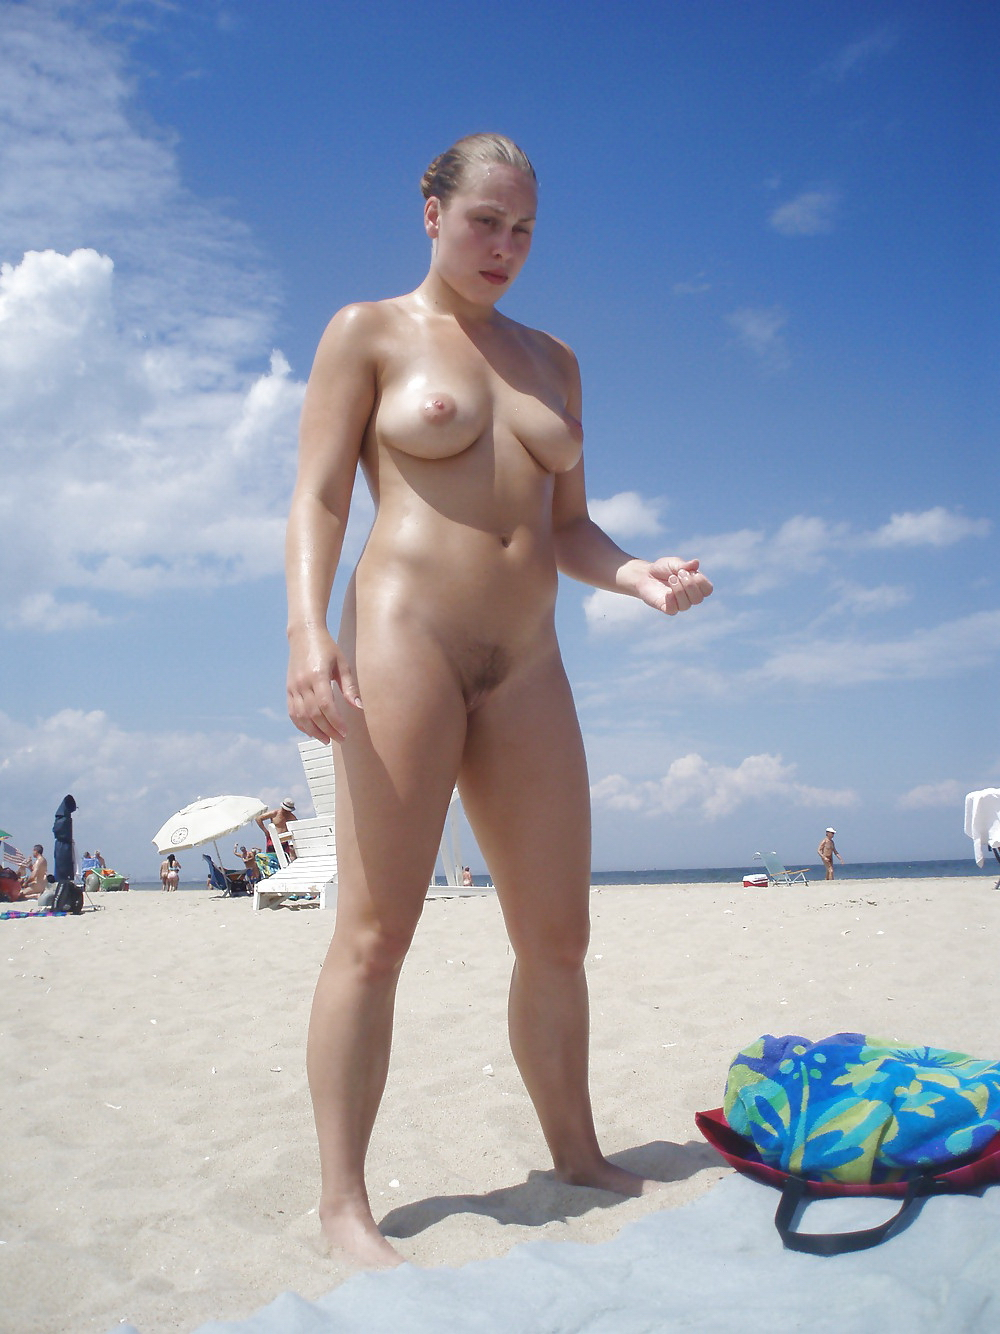 Beach fkk nude never